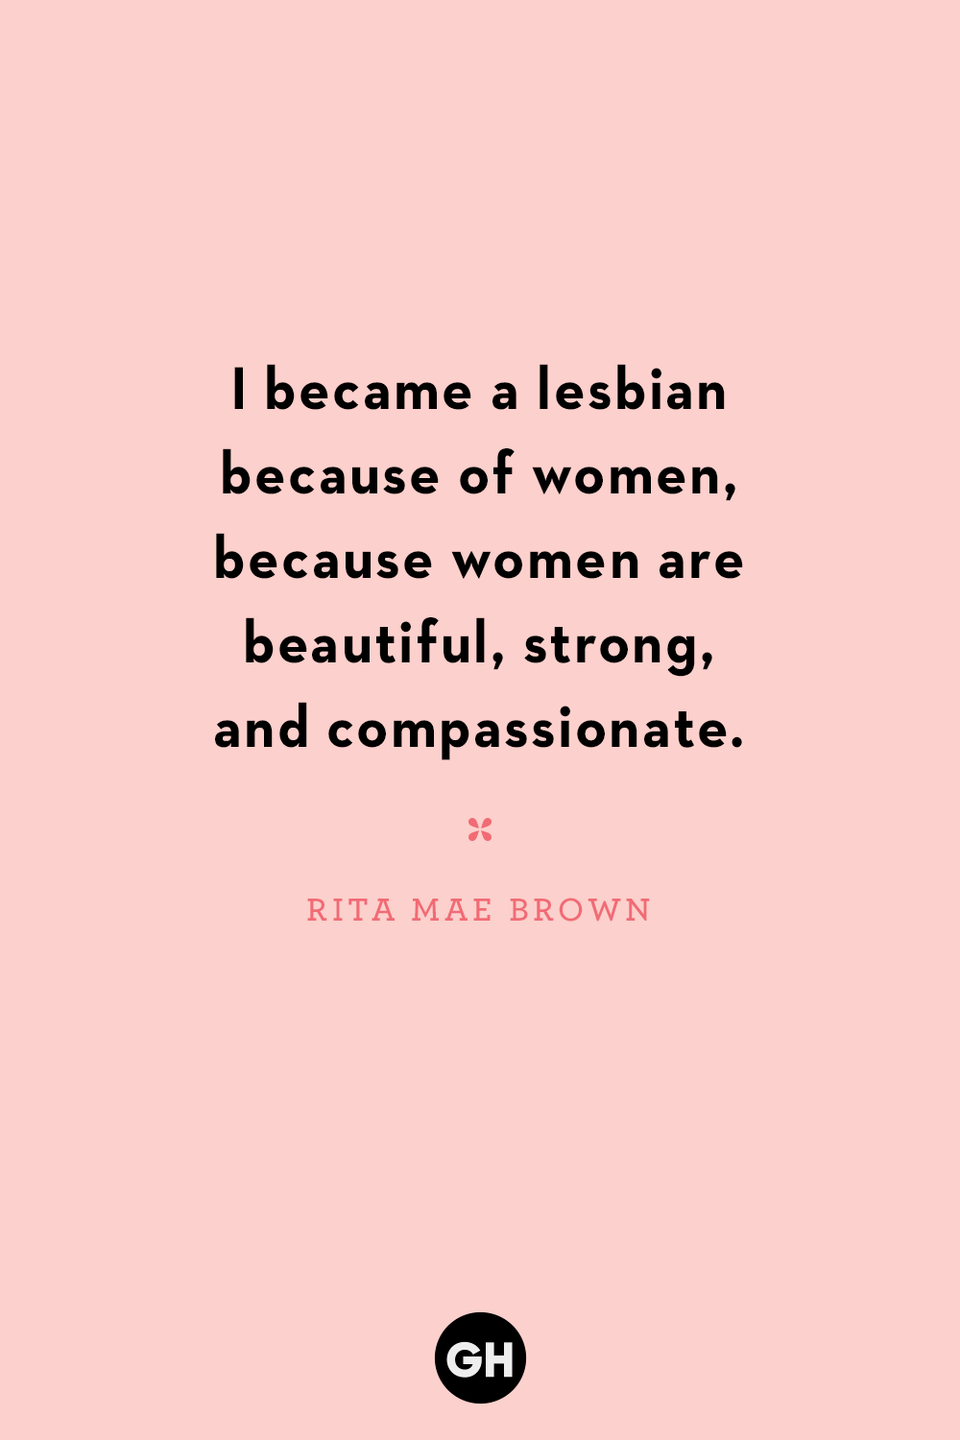 <p>I became a lesbian because of women, because women are beautiful, strong and compassionate.</p>